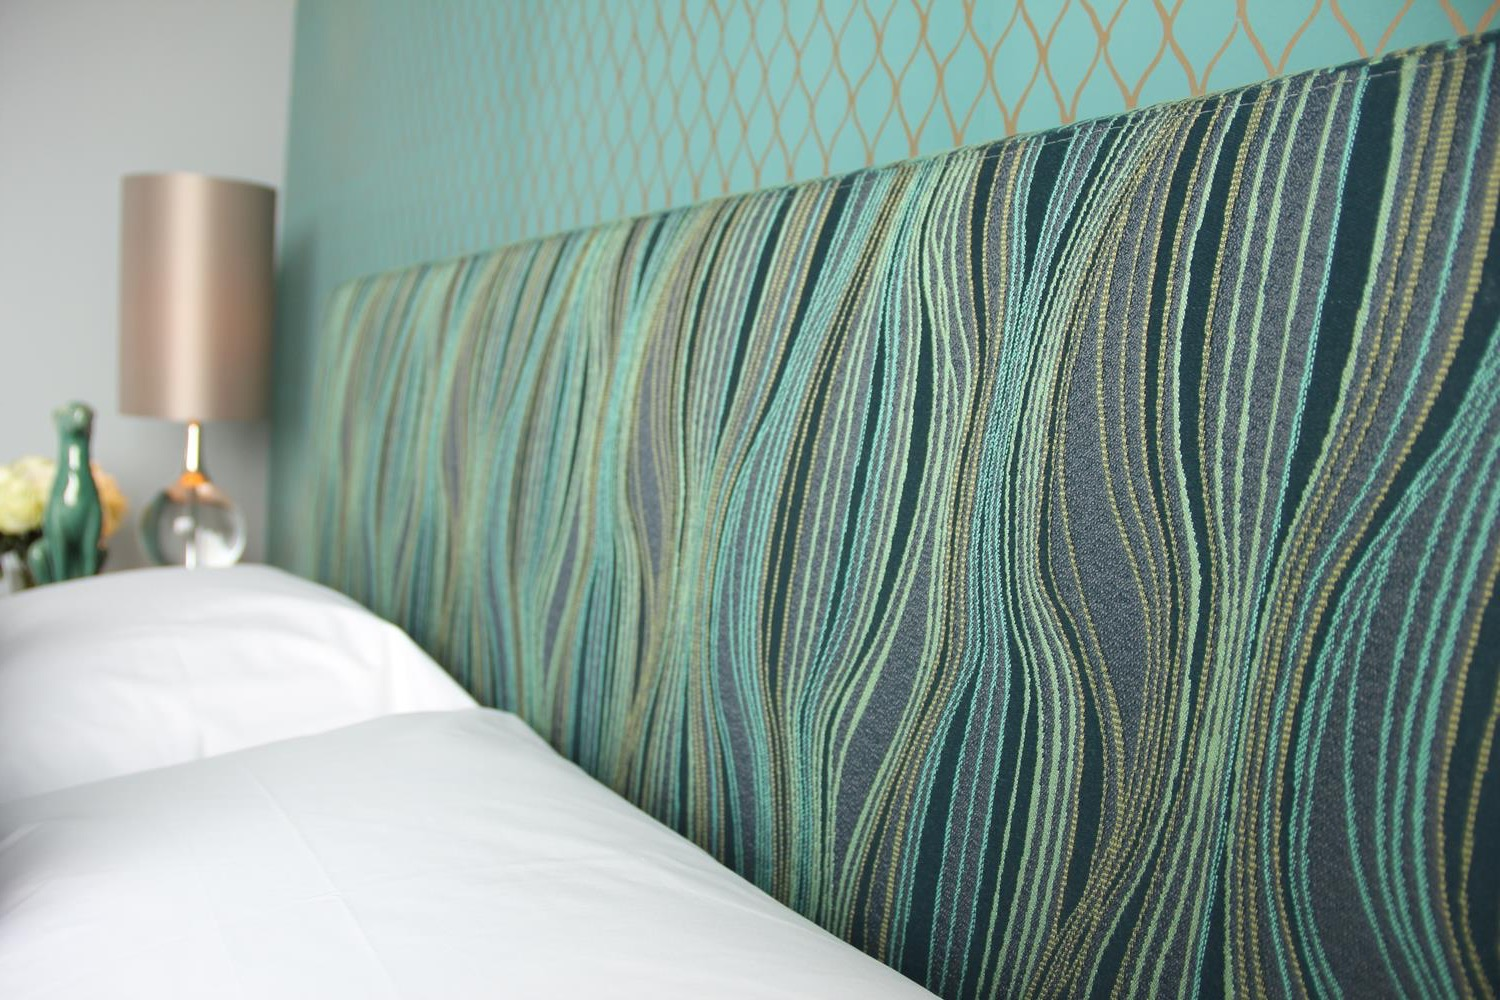 Peacock Like Headboard Wows In Midcentury Modern Bedroom (Image 12 of 15)